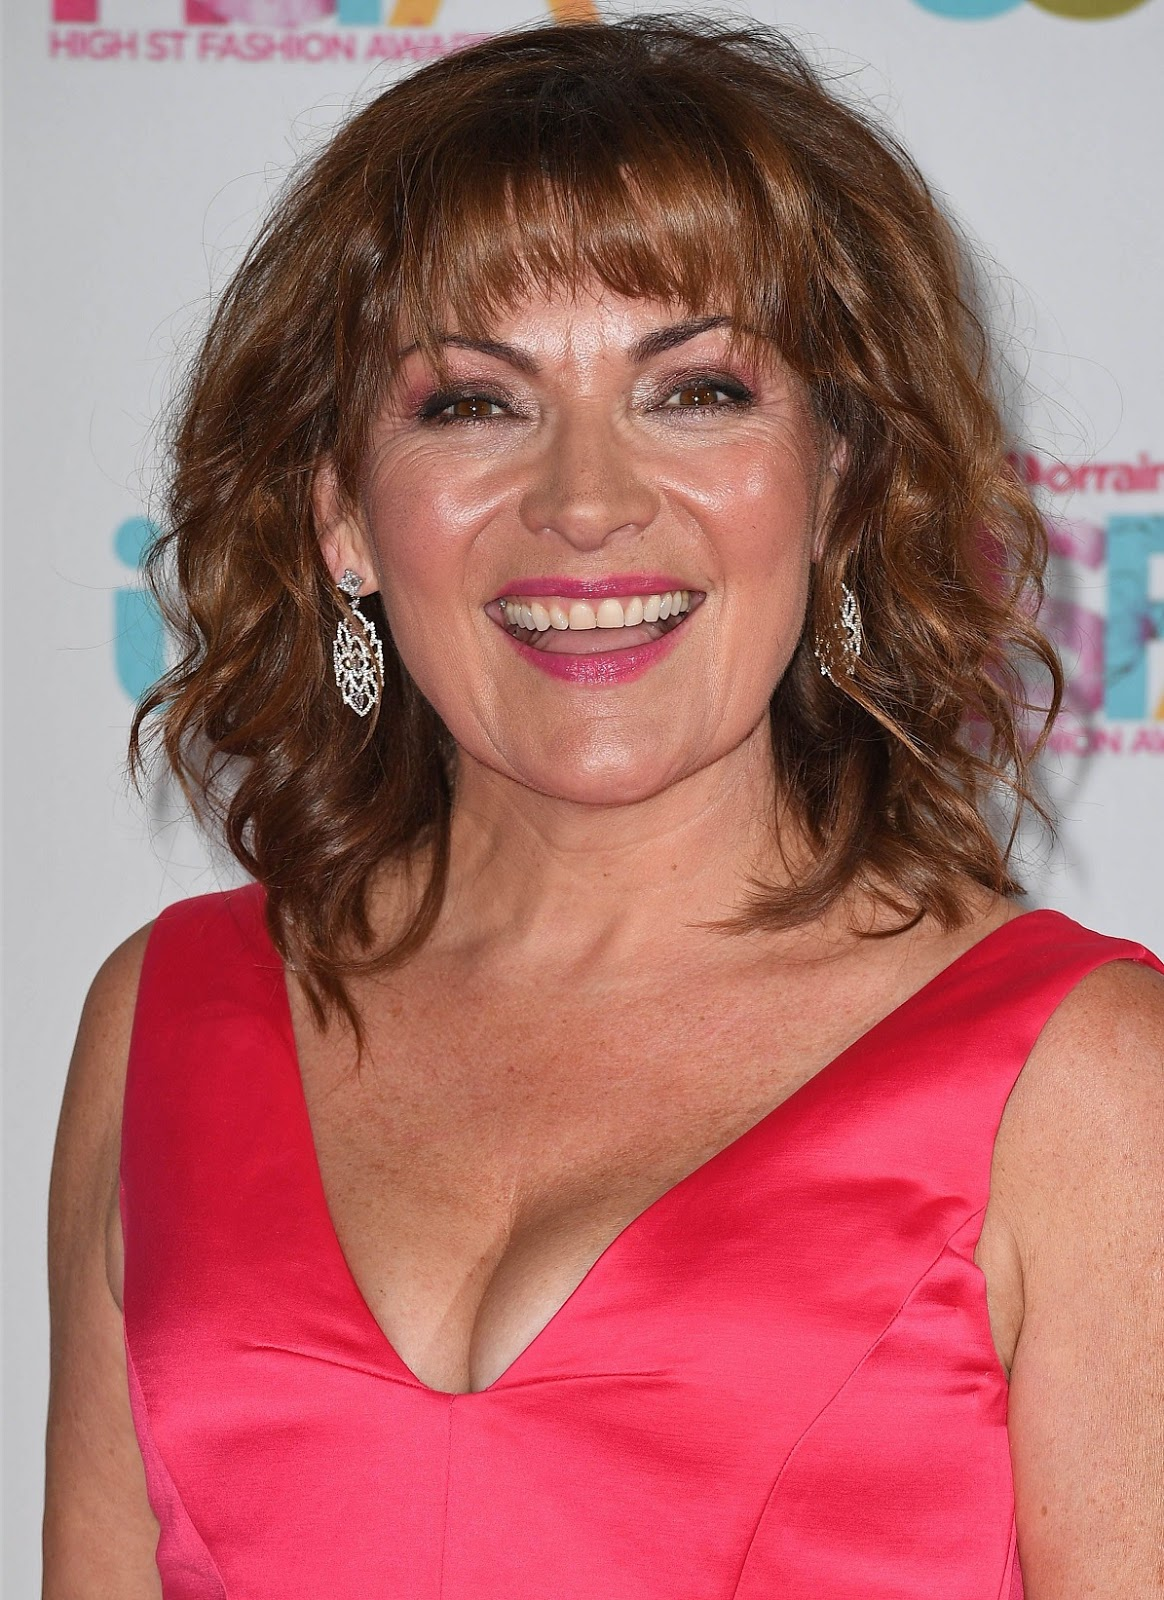 lorraine kelly appreciation society: 2016